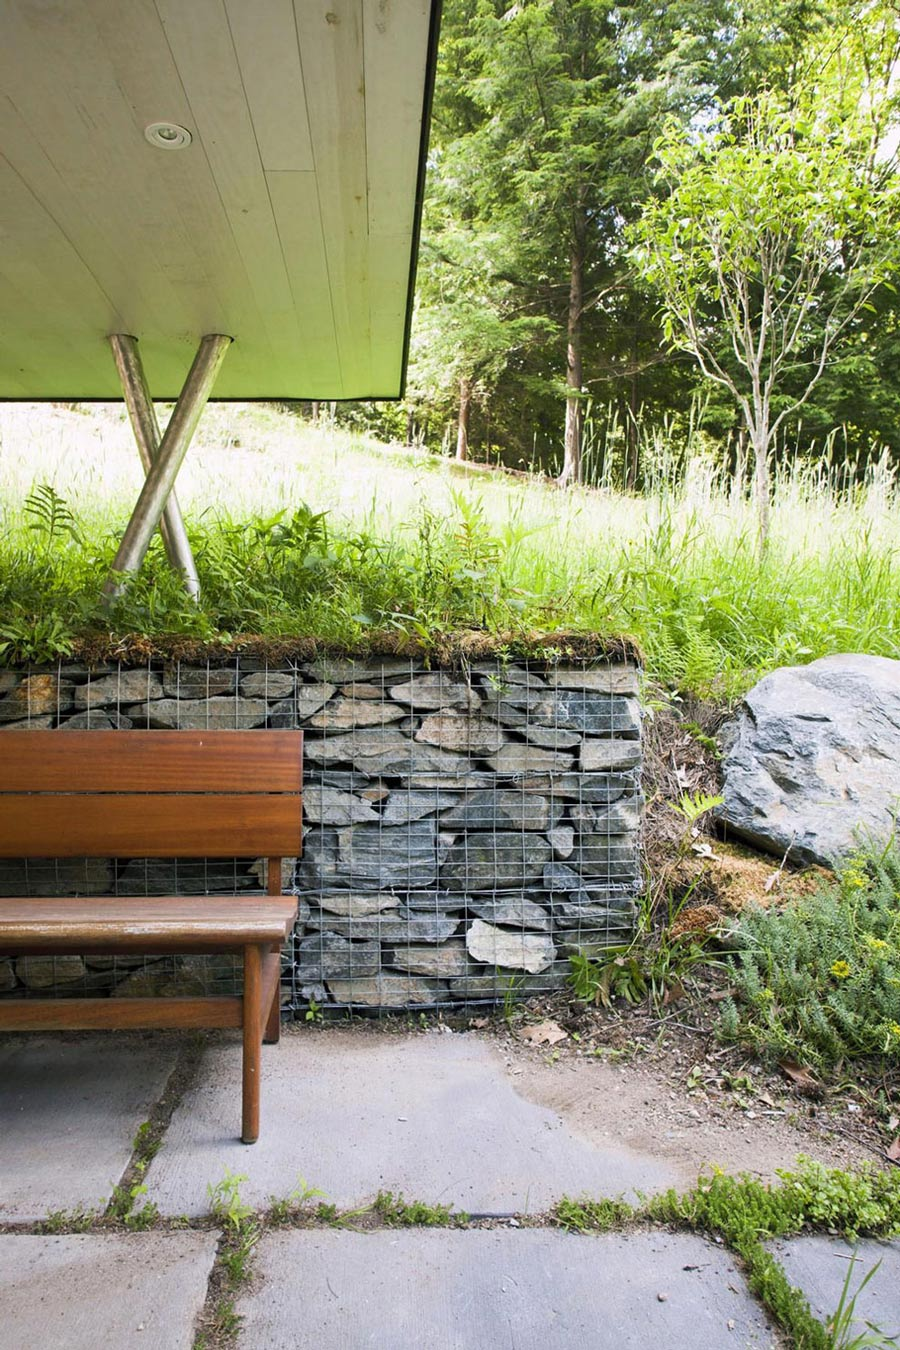 Natural Stone Wall, Rural Retreat in Bantam, Connecticut